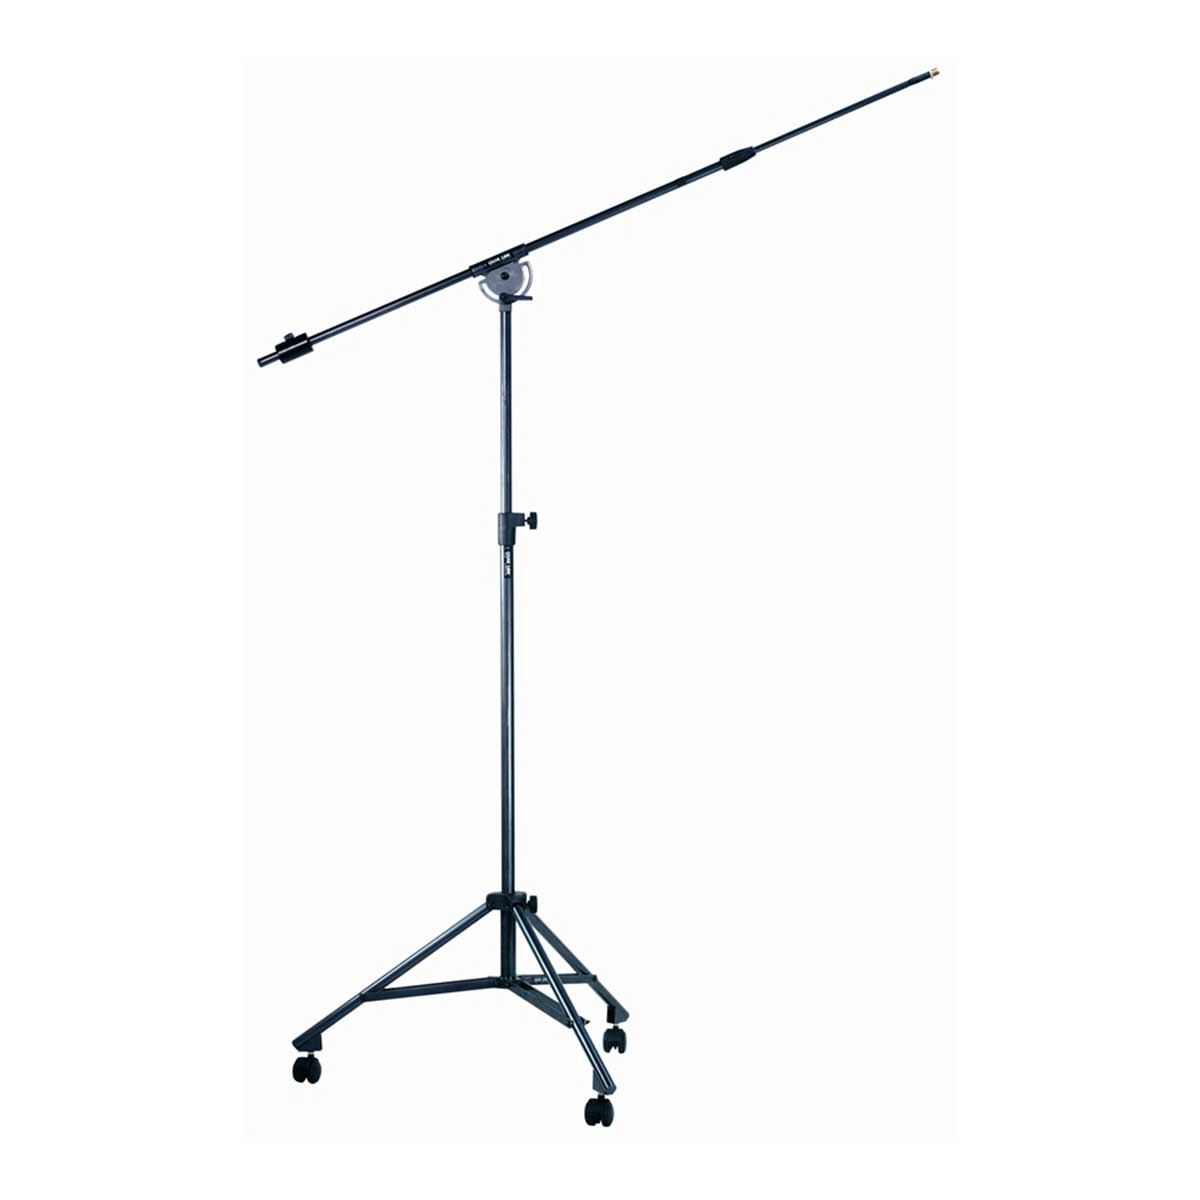 Quicklok A/50 Height-adjustable tripod studio boom stand with casters